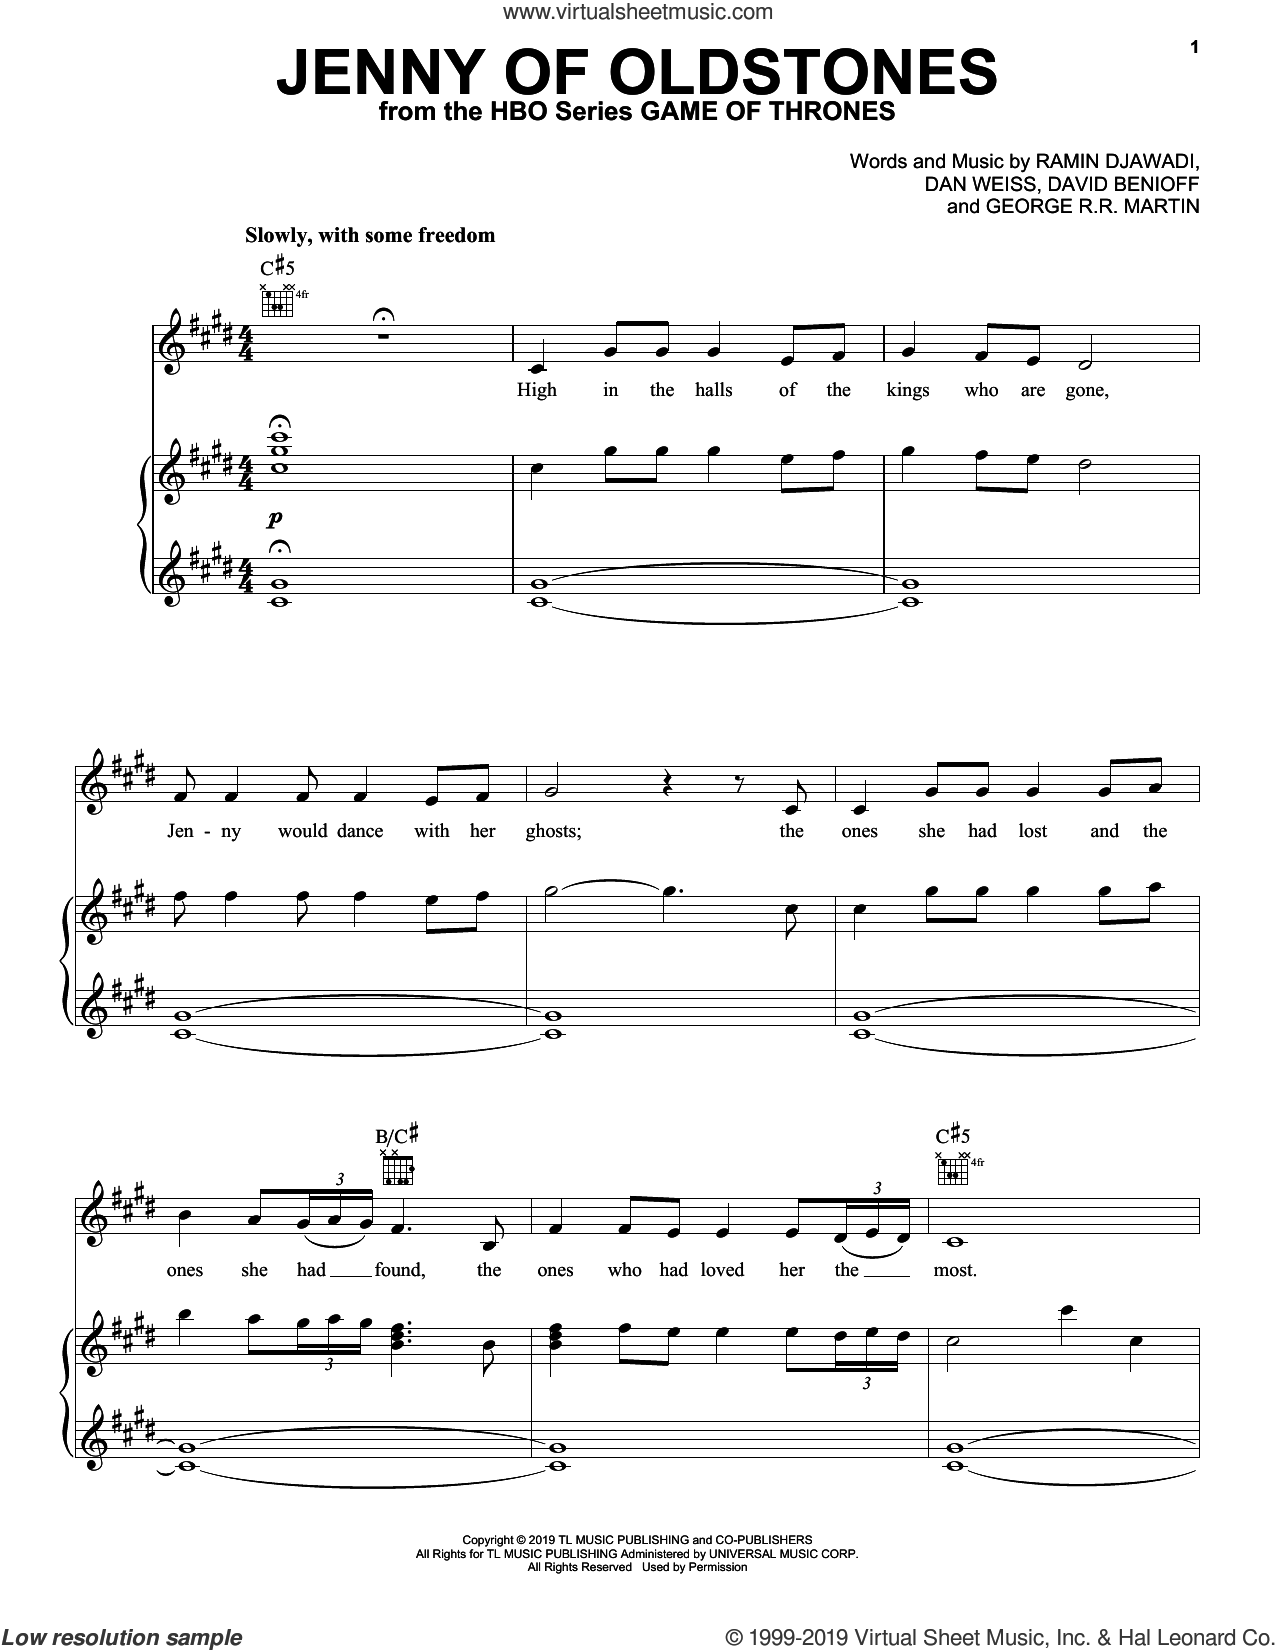 Jenny Of Oldstones (from Game of Thrones) sheet music for voice, piano or guitar by Ramin Djawadi, Florence + The Machine, Florence And The  Machine, Dan Weiss, David Benioff and George R.R. Martin, intermediate skill level